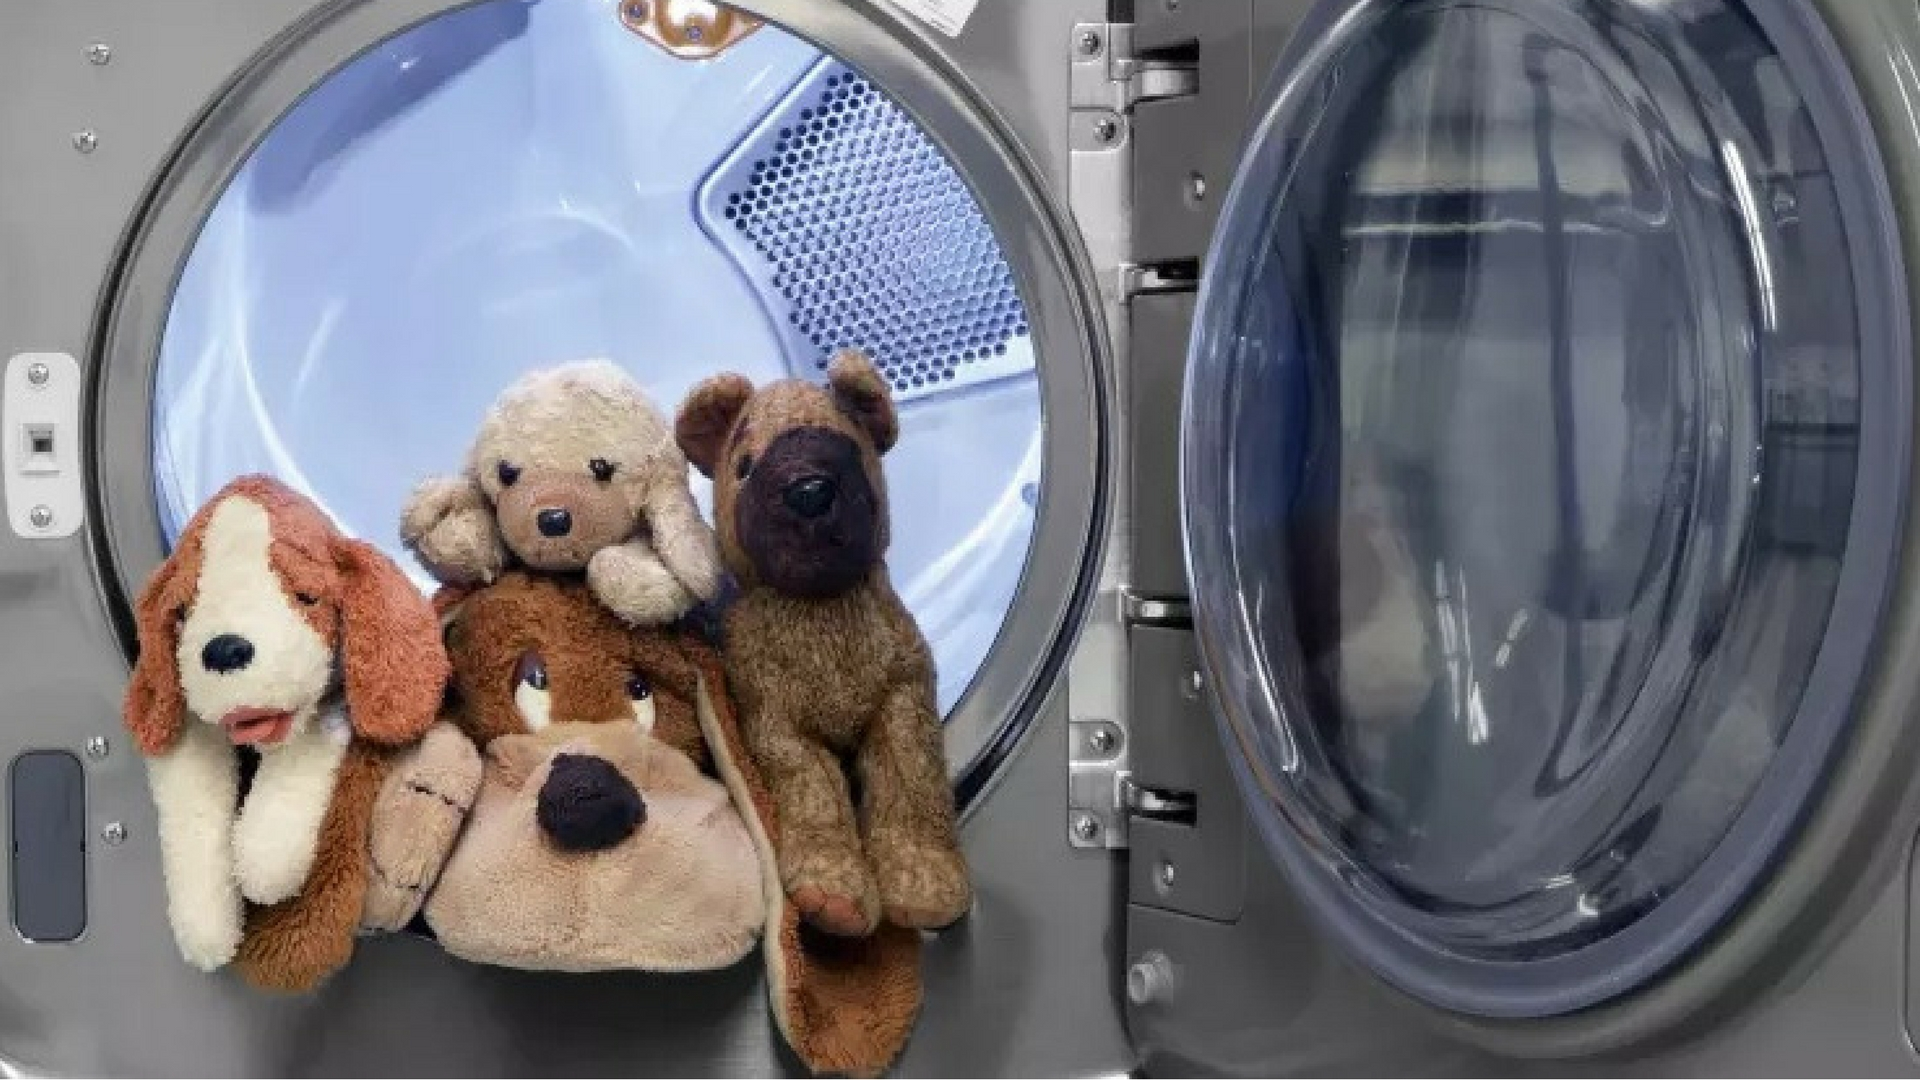 4 Common Mistakes In Washing Stuffed Toys You Should Avoid